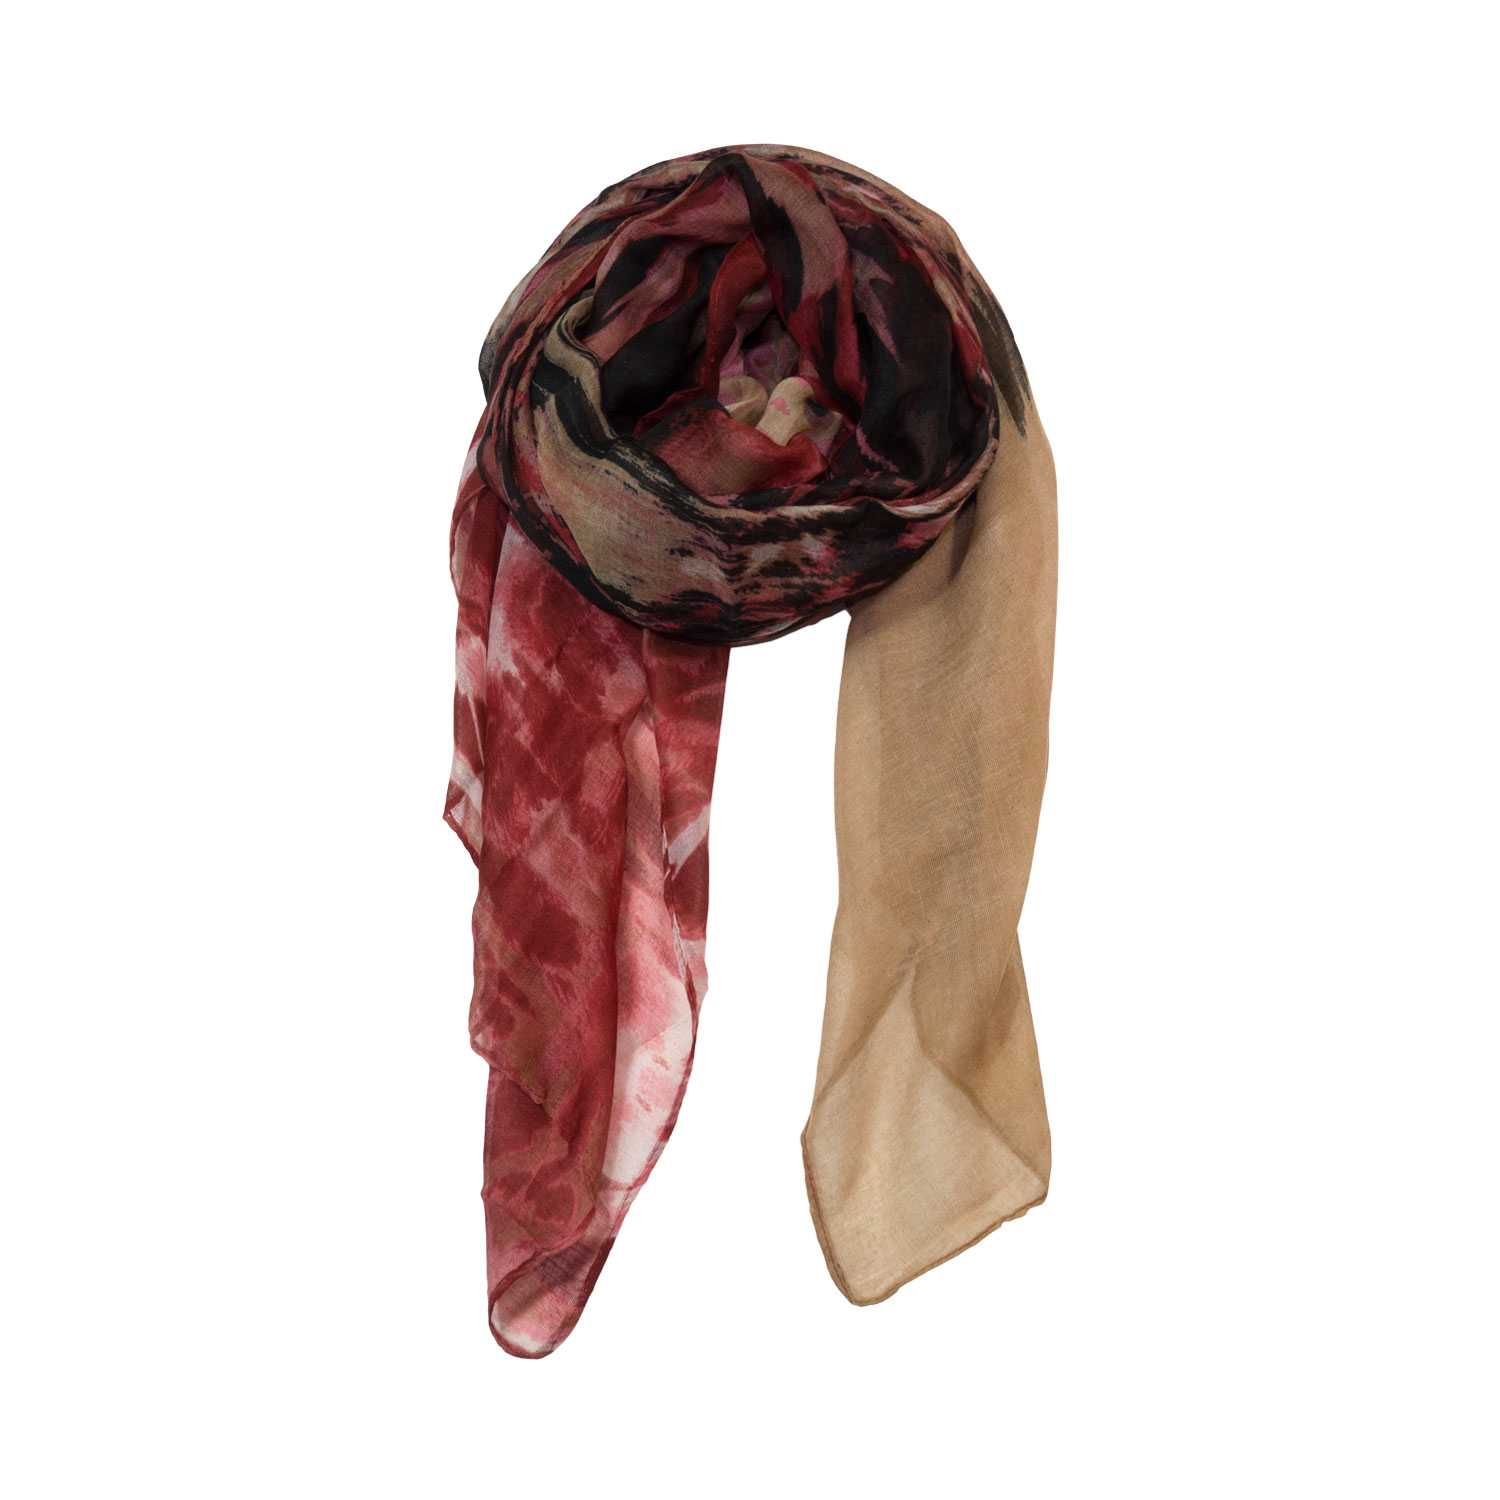 Late Autumn Fashion Scarves Wrap - Zestique